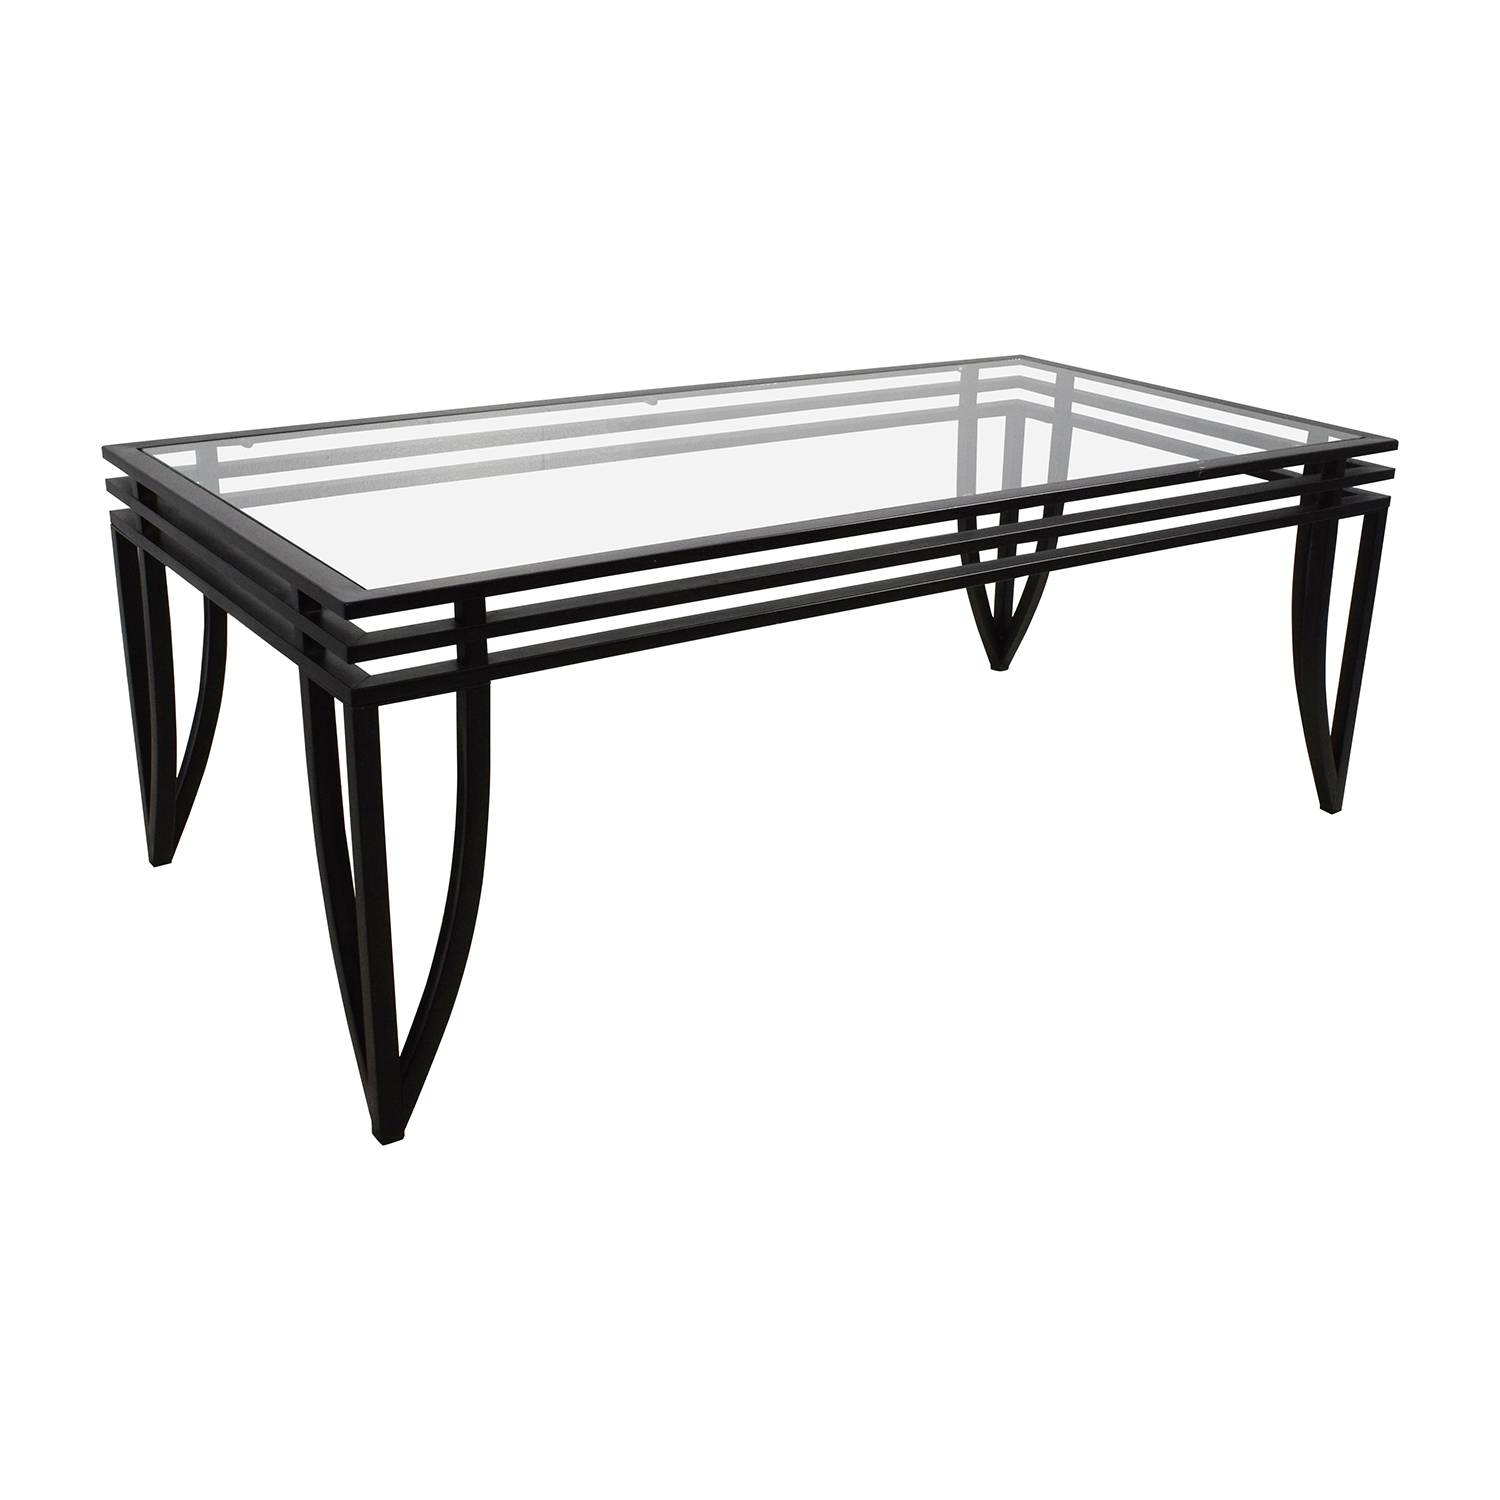 77% Off - Ashley Furniture Ashley Furniture Rectangular Glass And pertaining to Black Coffee Tables (Image 1 of 30)